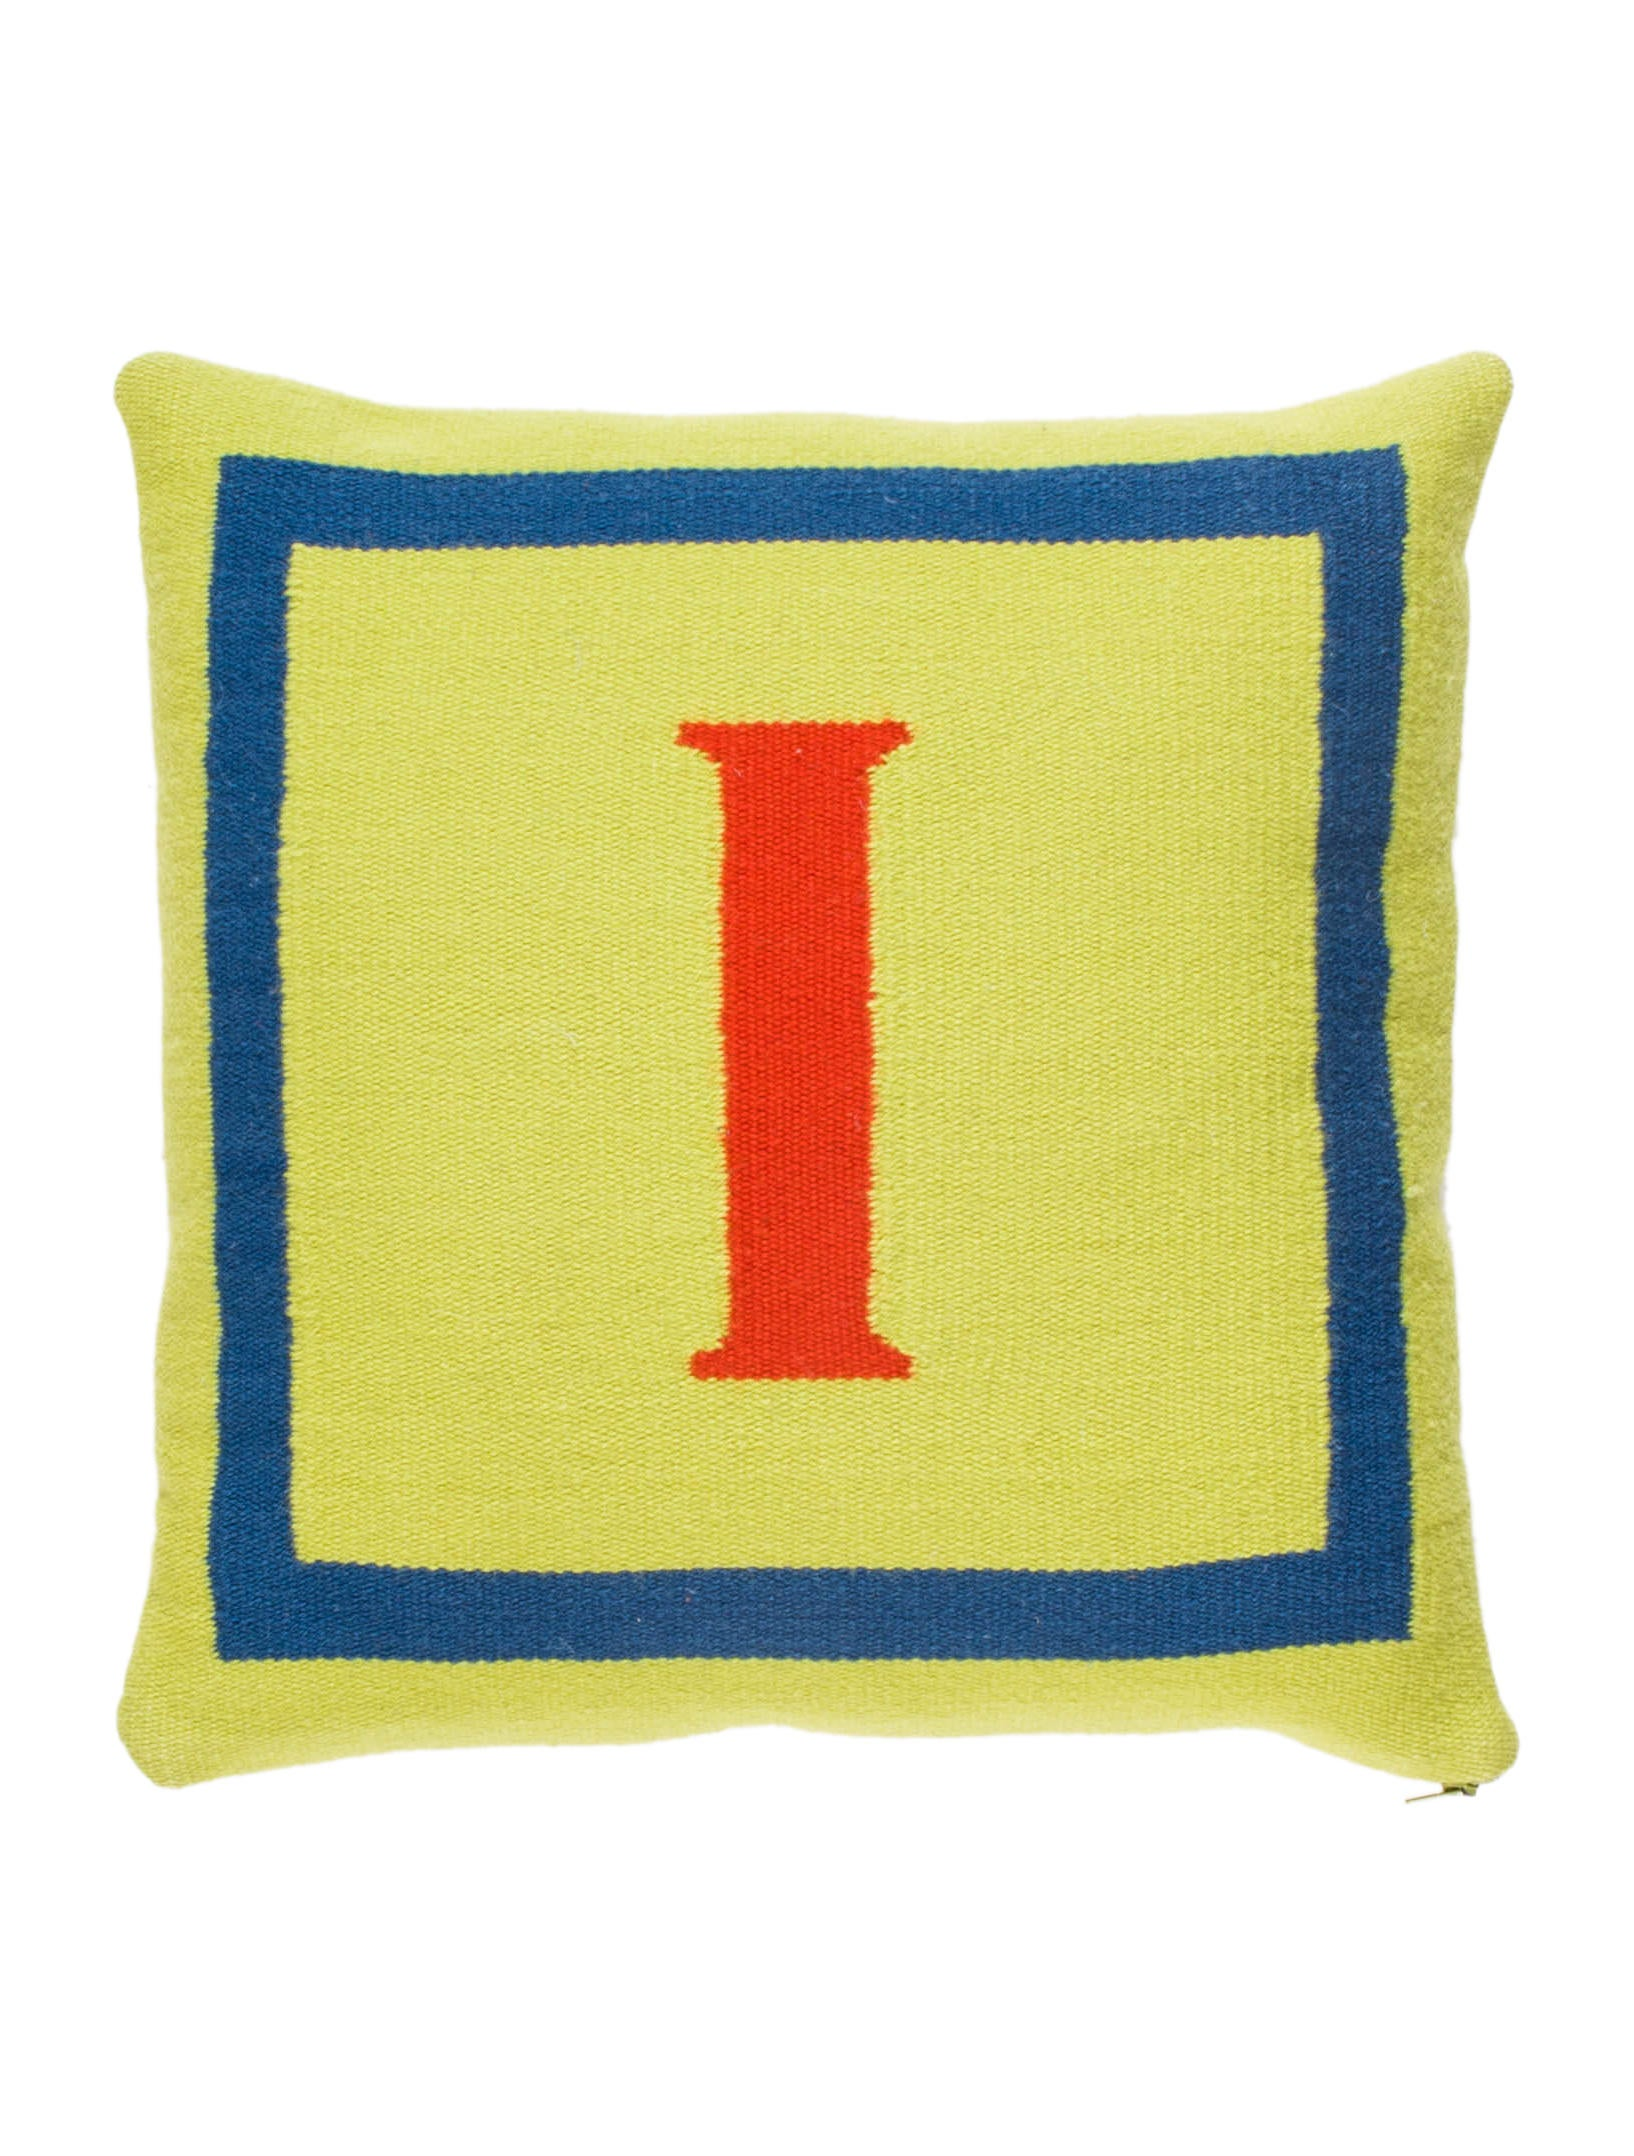 Jonathan Adler Letter Throw Pillow - Bedding And Bath - JTADL20607 The RealReal